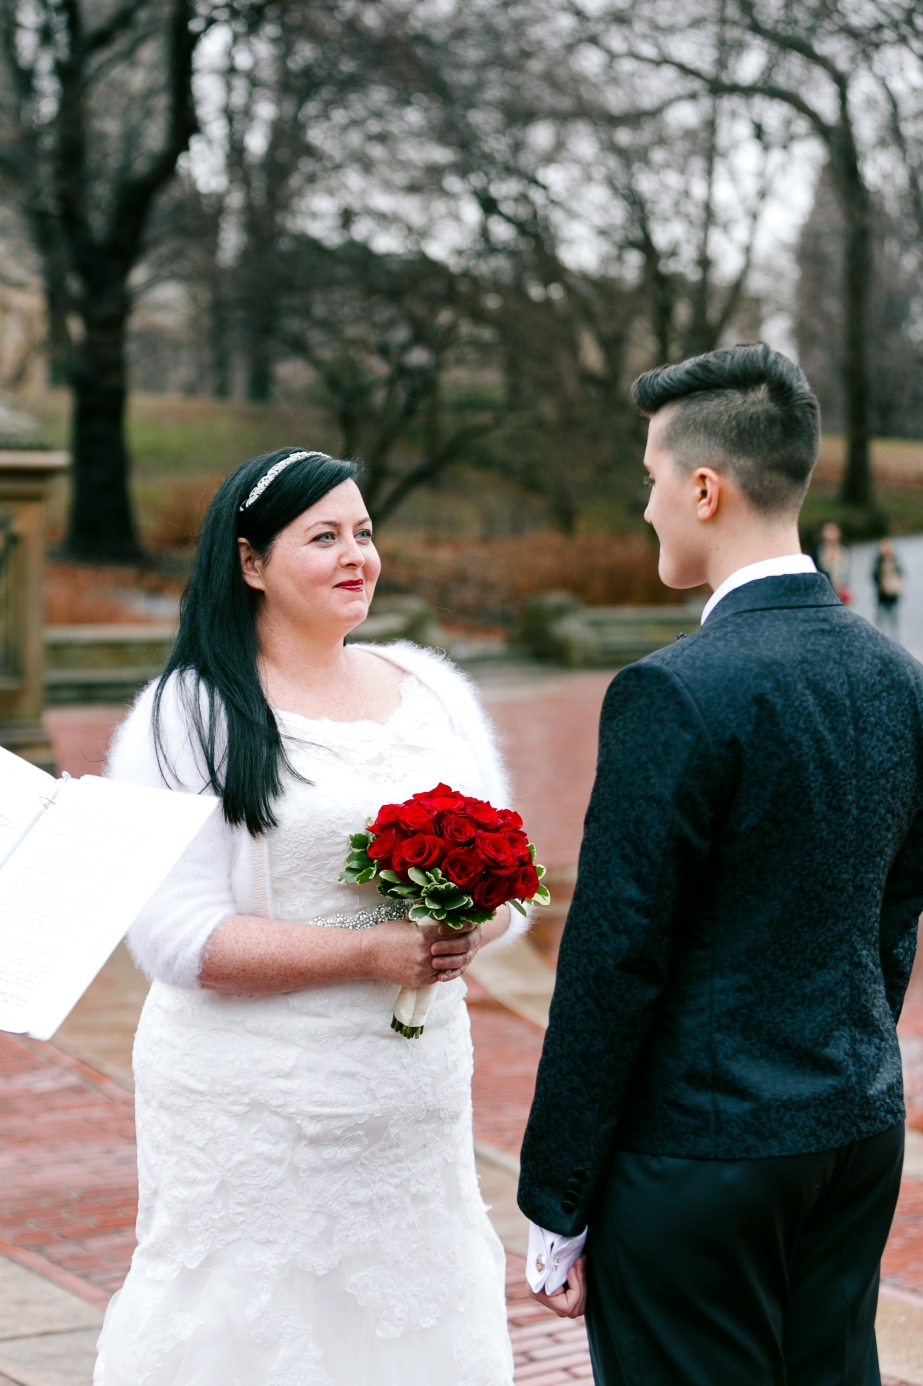 Bethesda_fountain_centralpark_wedding_RJ-38